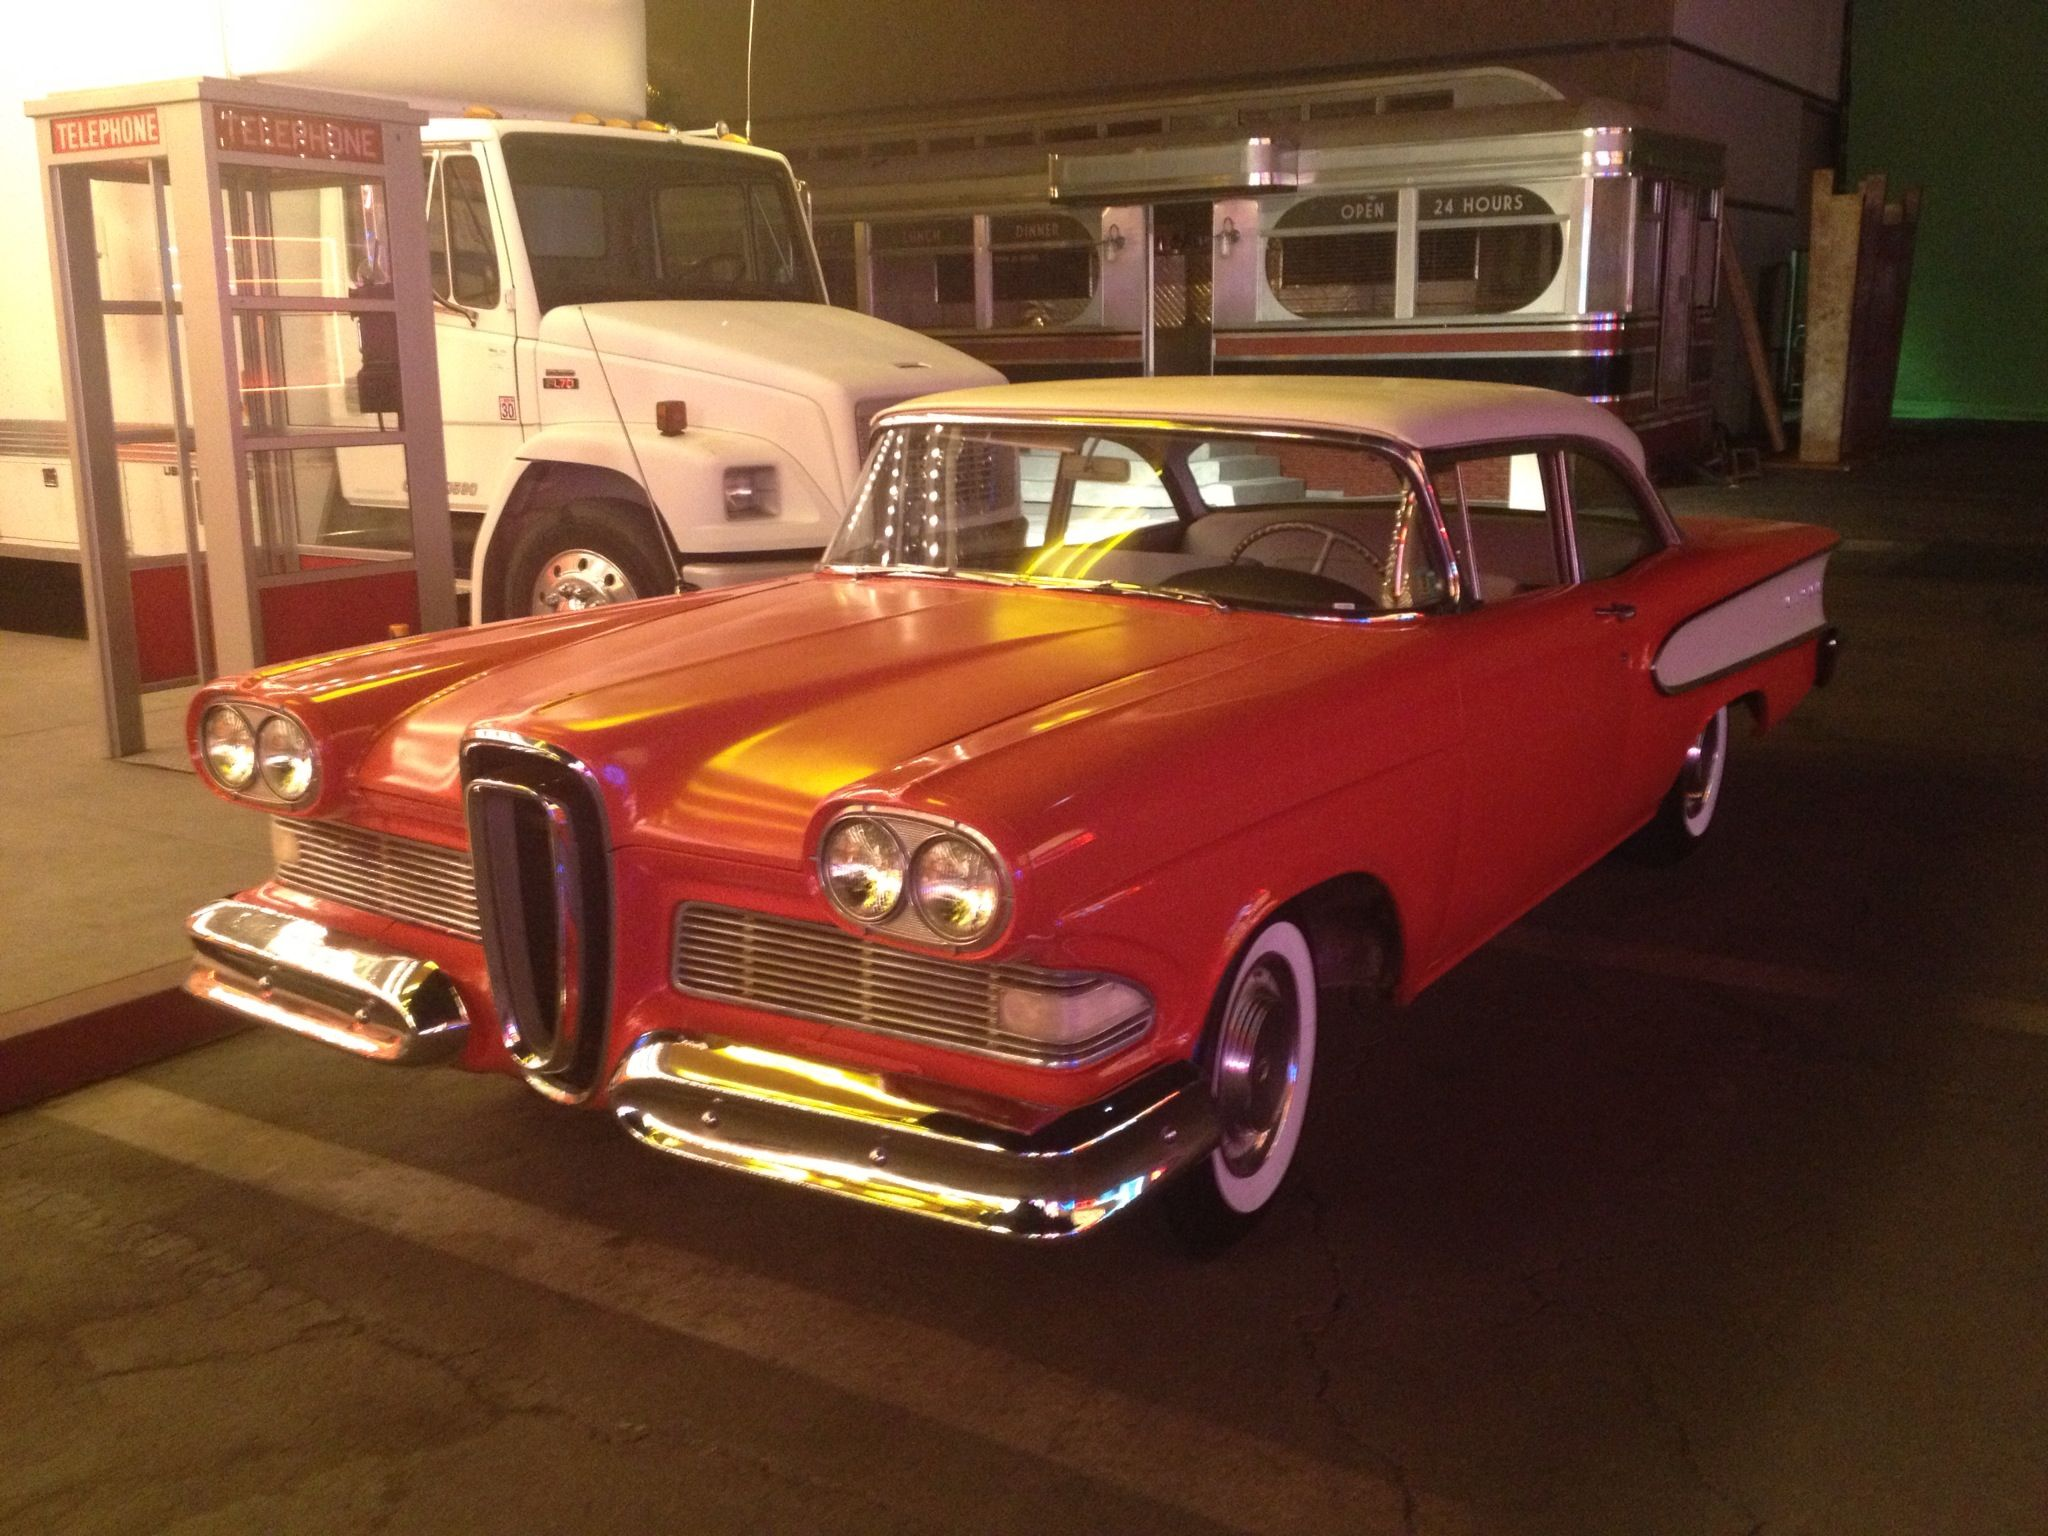 Orange Glow For A Very Nice Old Car Antique Cars Edsel Old Cars